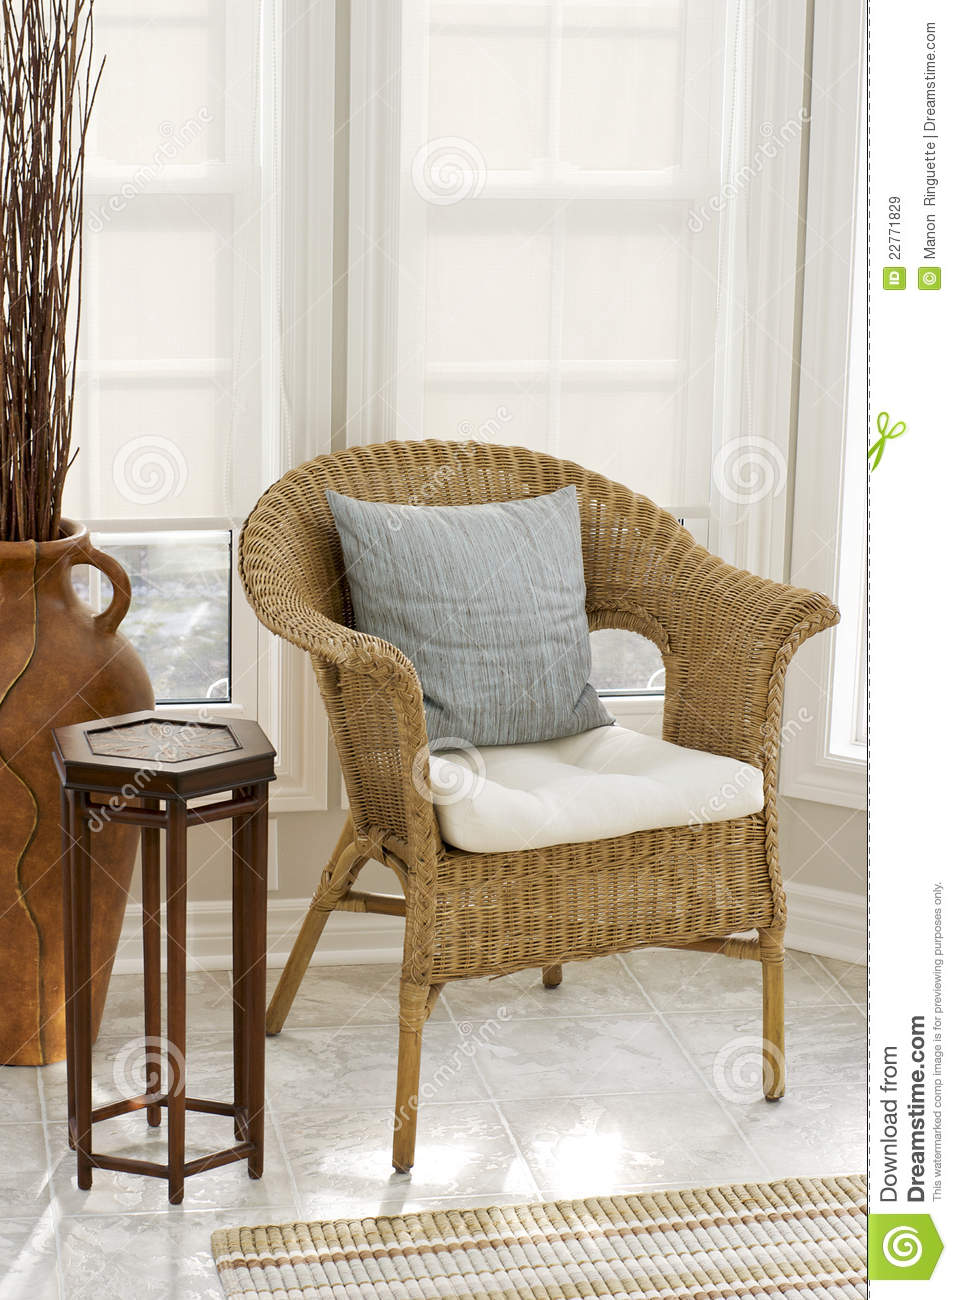 Home Decor Wicker Chair In Sun Room Royalty Free Stock